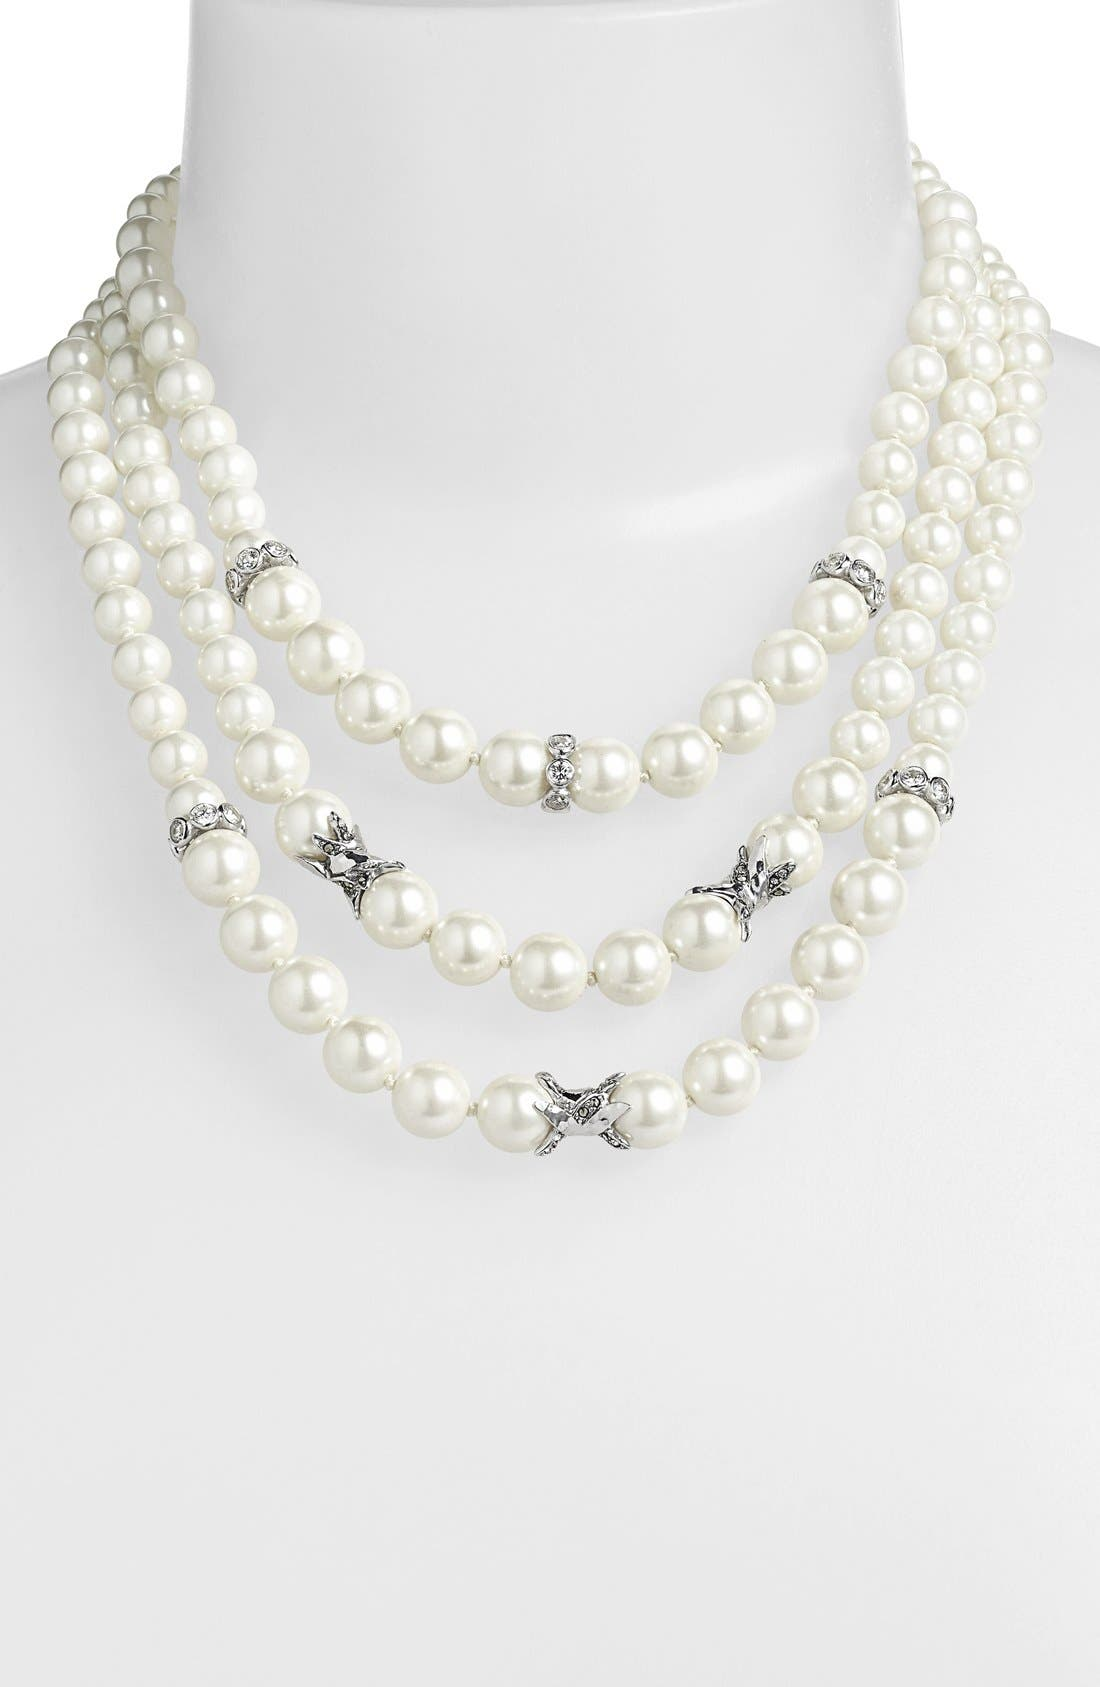 Main Image - Judith Jack 'Pearl Romance' Faux Pearl Multistrand Necklace